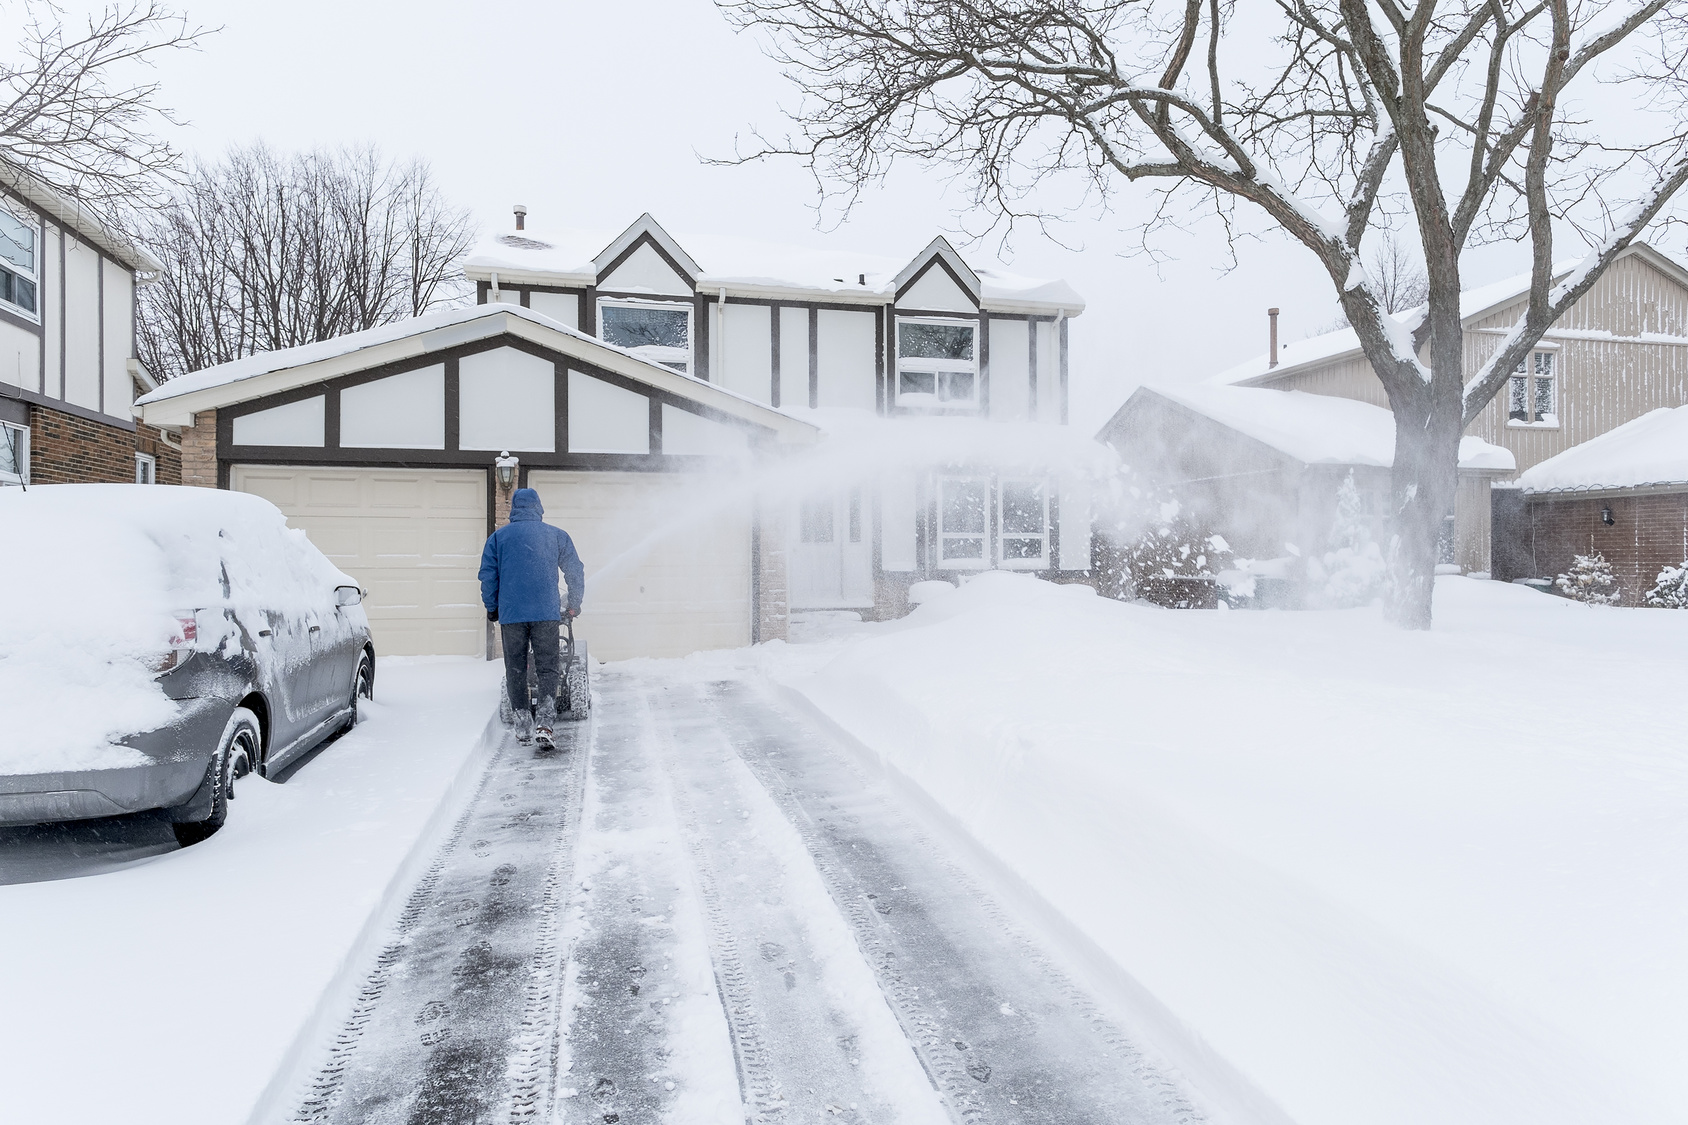 A garage doors man clearing snow with a snow blower for Garage door repair roy utah